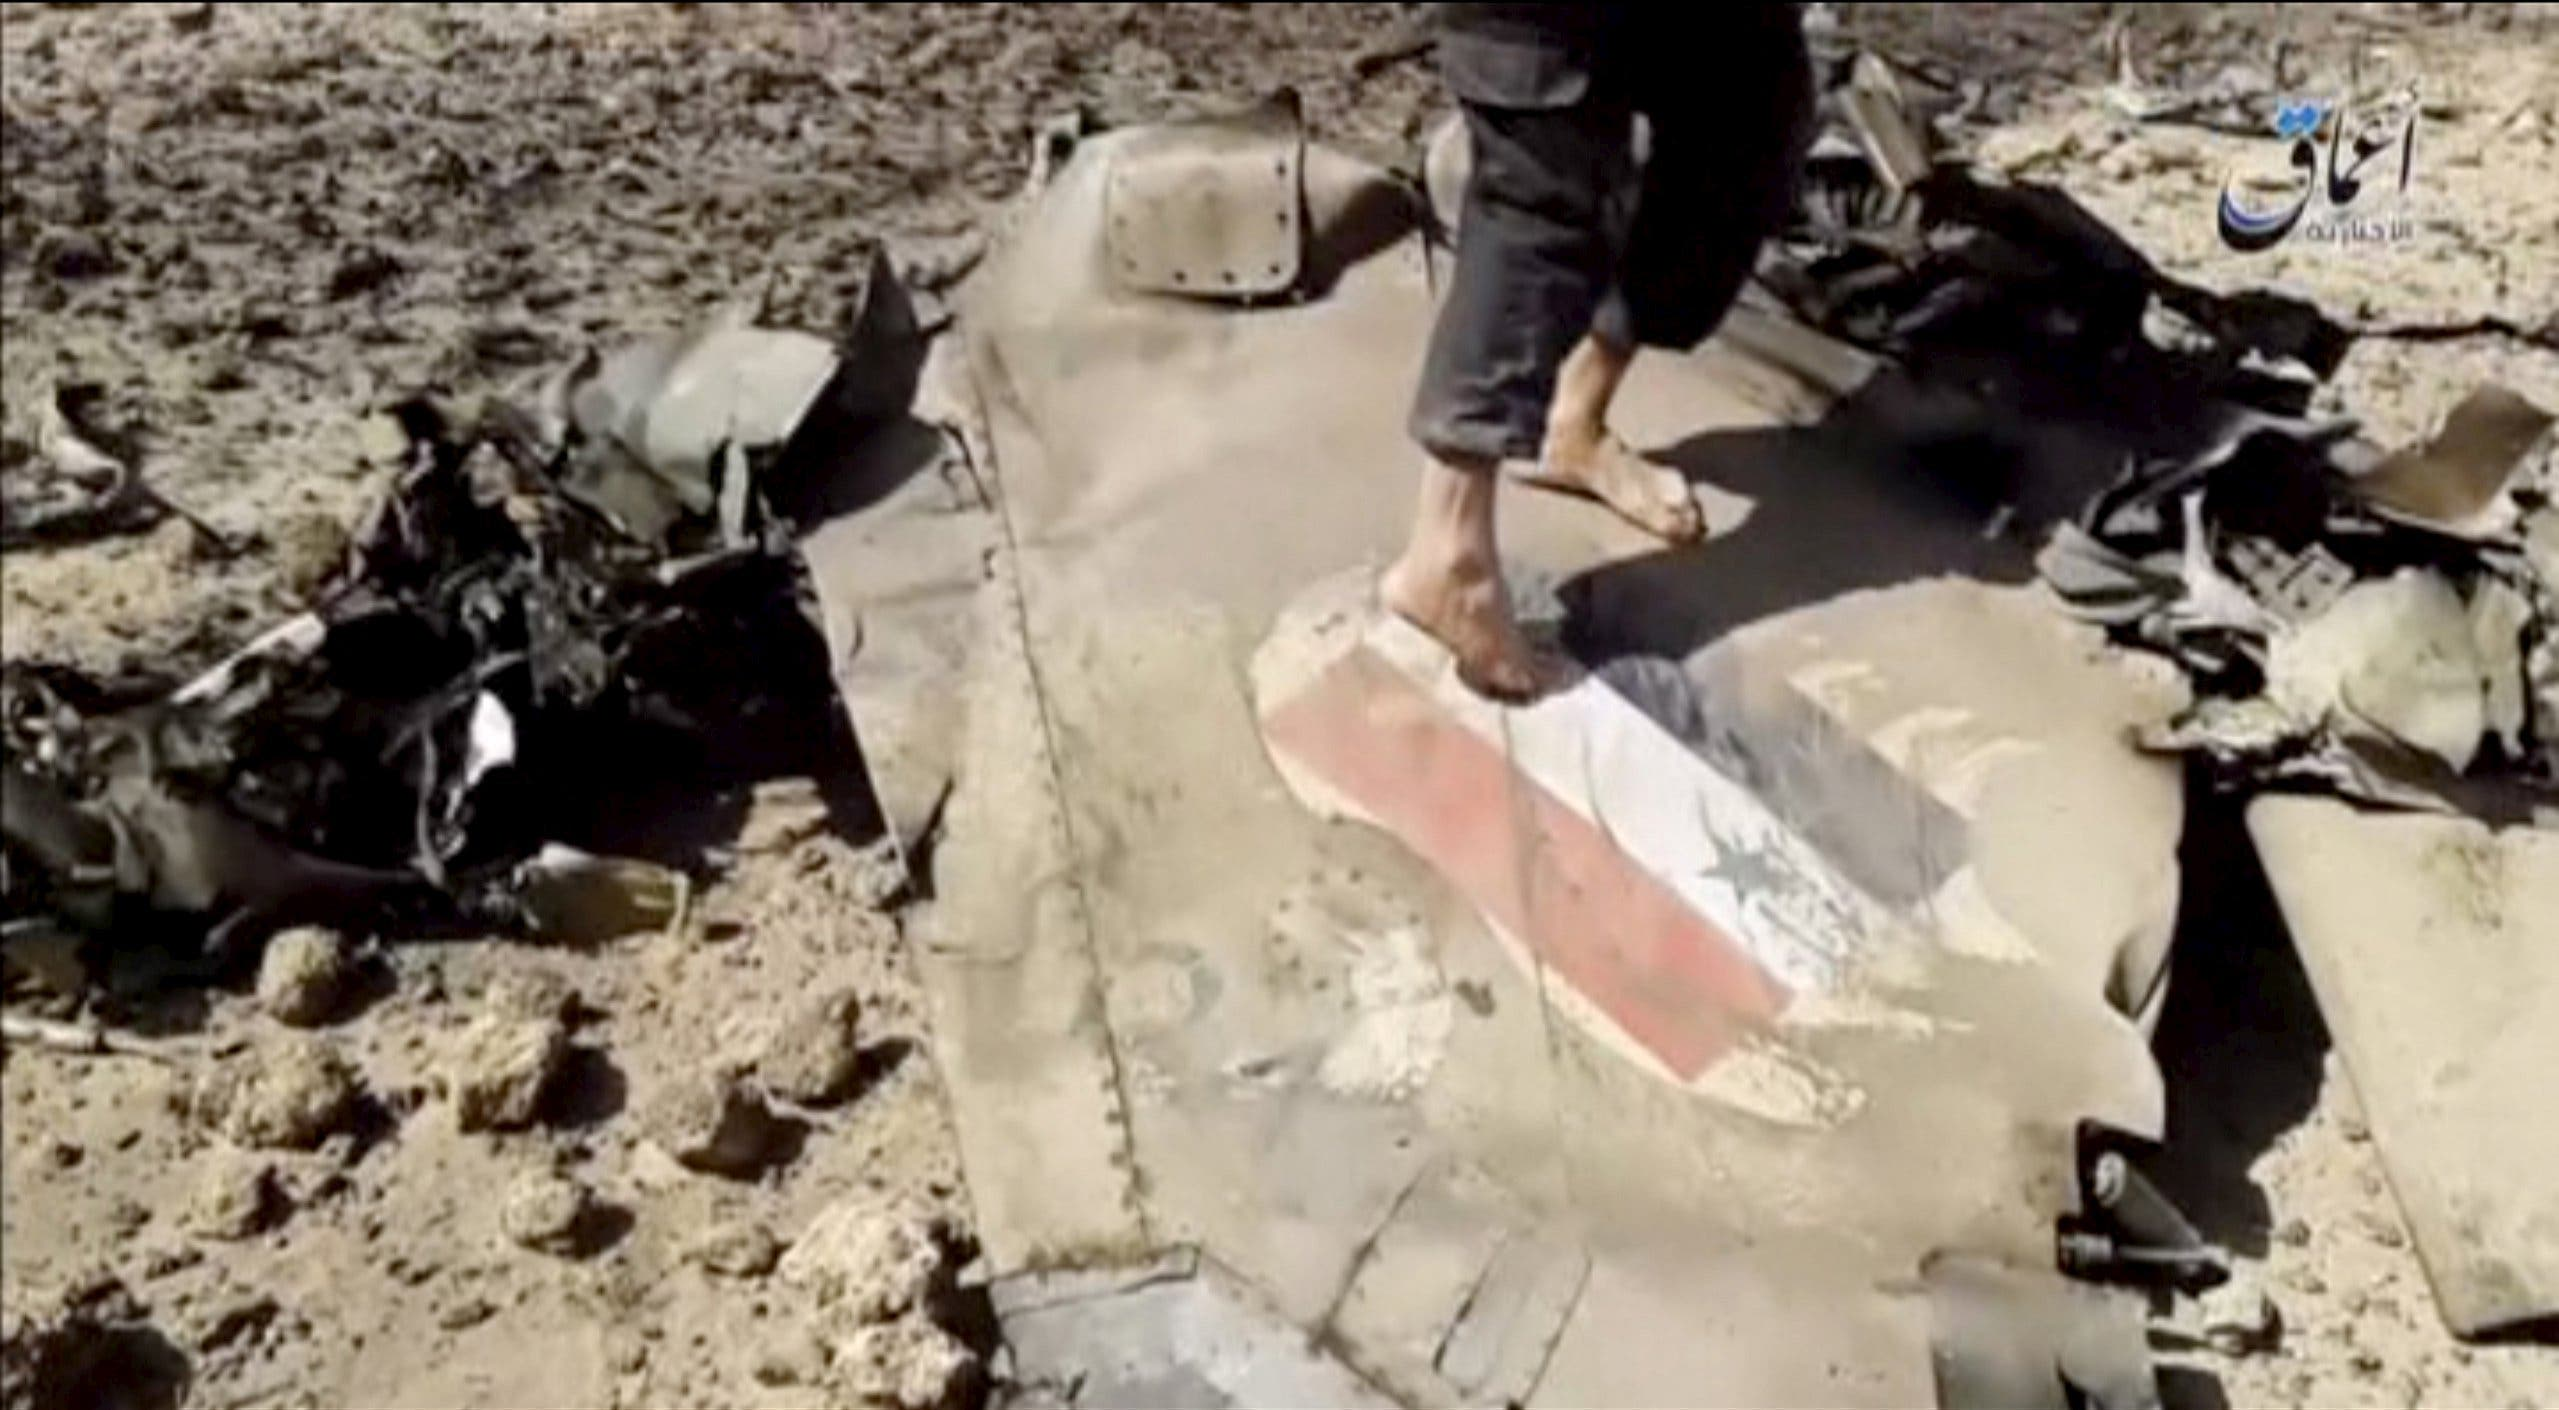 A man walks on the wreckage of a plane that crashed southeast of Damascus, Syria in this still image taken from video said to be shot April 22, 2016. (Reuters)